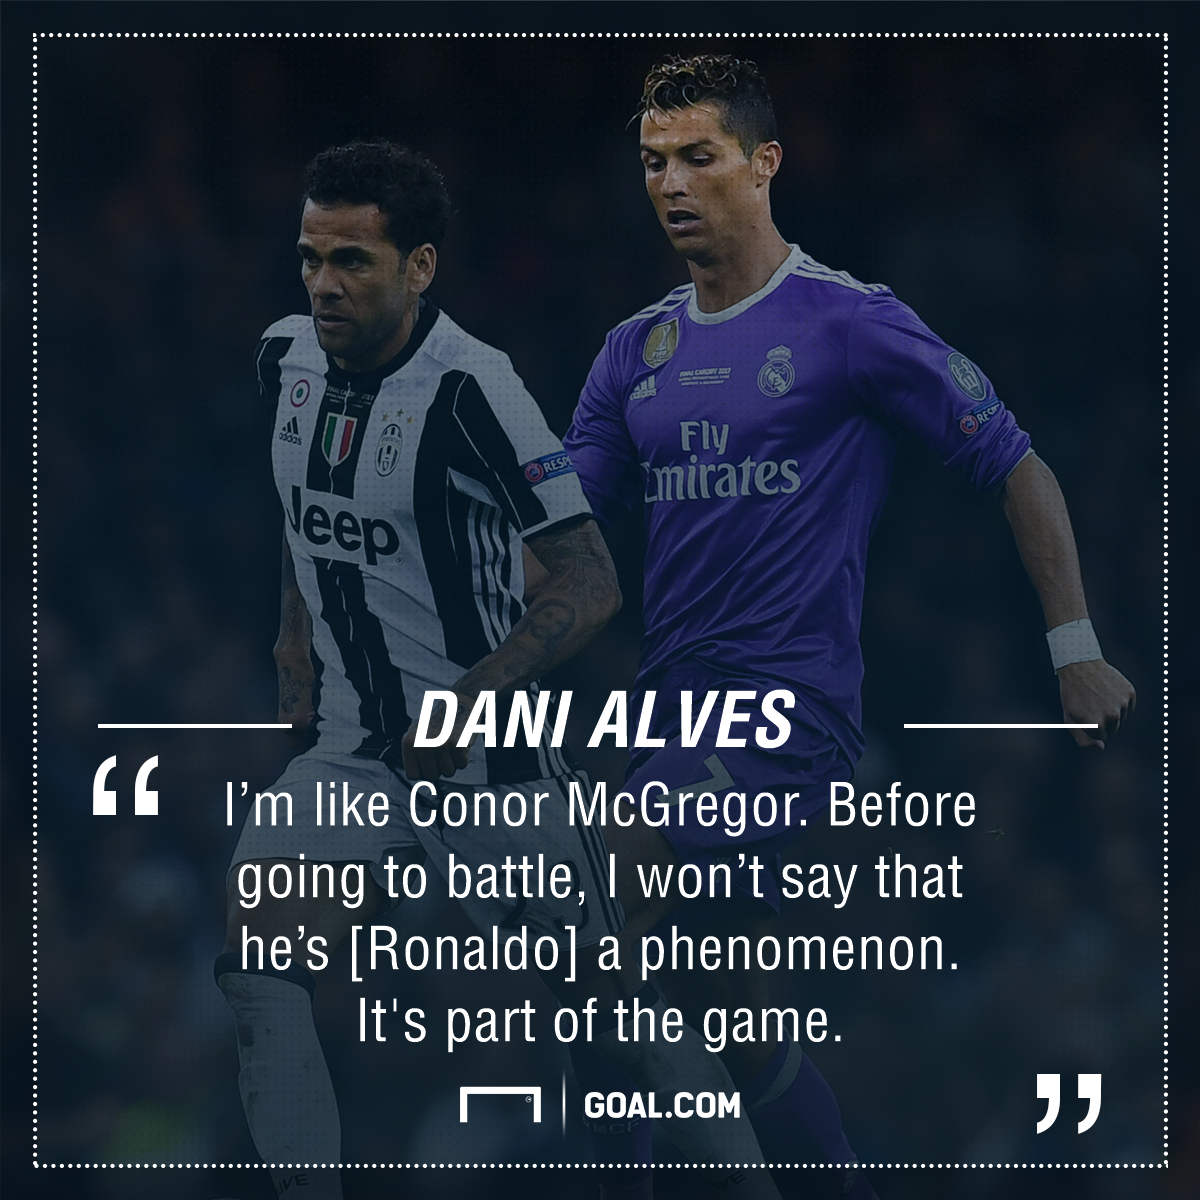 Dani Alves has Man City deal